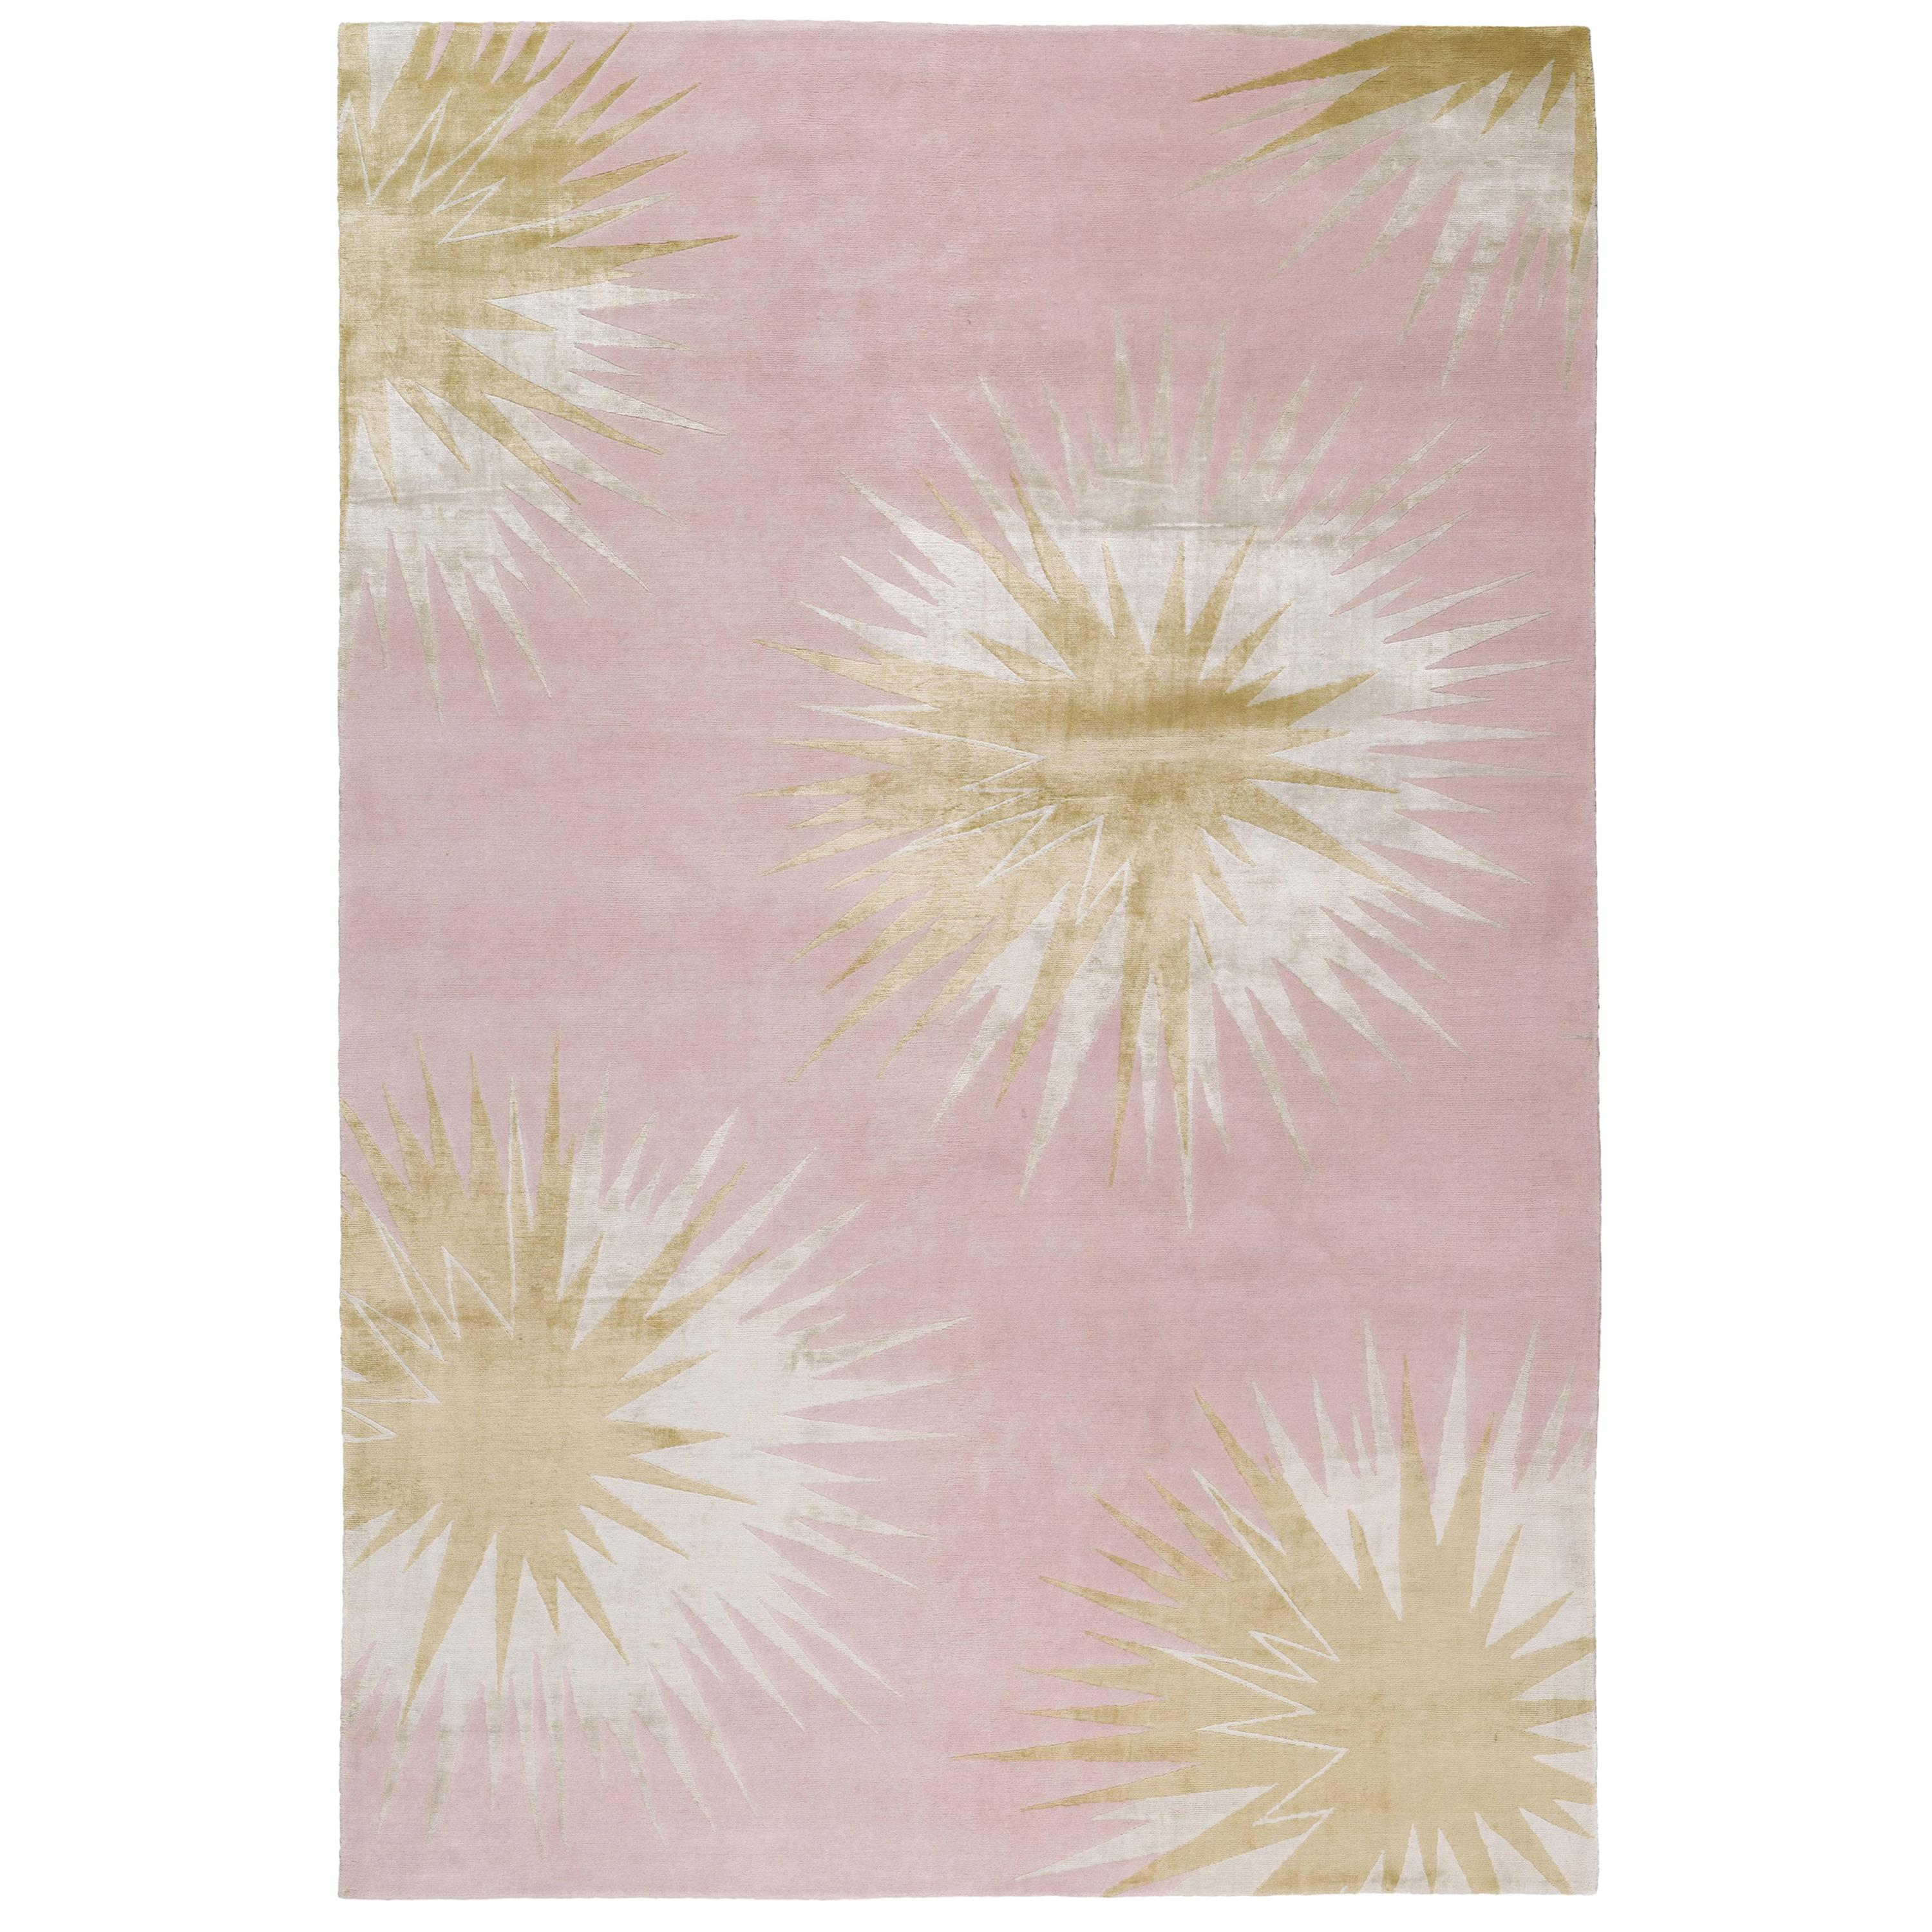 Thistle Gold Hand Knotted 12x9 Rug in Wool and Silk by